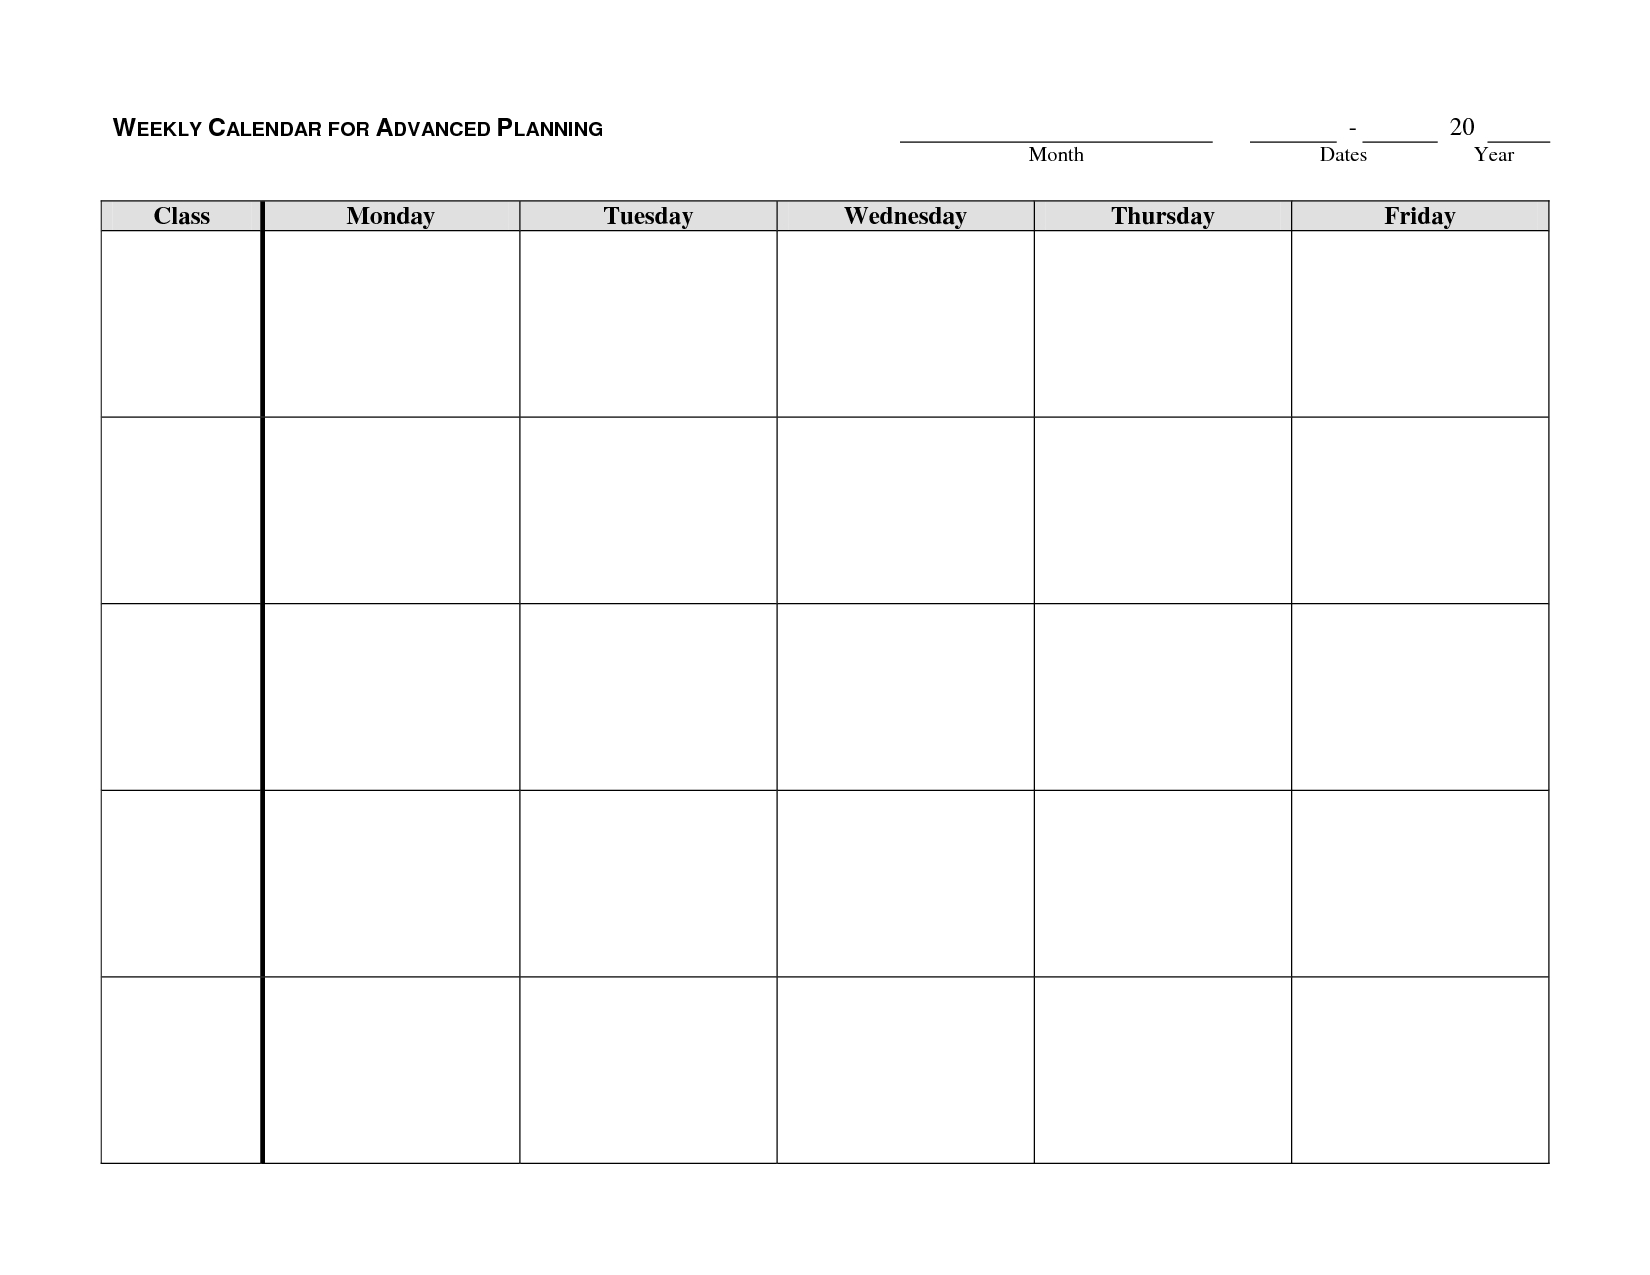 Weekly Calendar Template - Google Search | Autism/school | Weekly intended for Weekly Blank Calendar Monday Through Friday